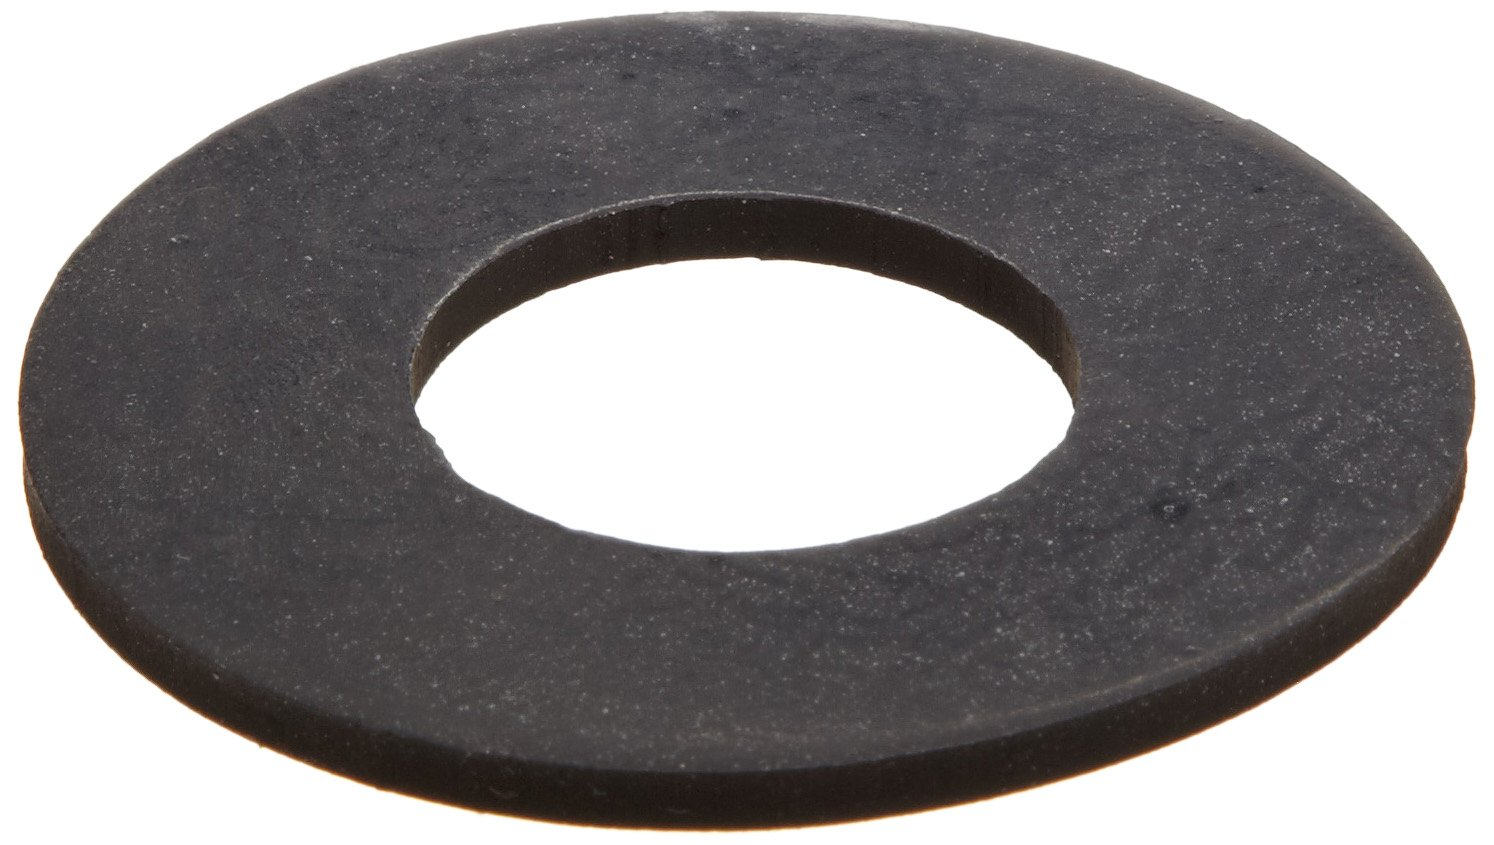 Neoprene Flange Gasket, Ring, Black, Fits Class 150 Flange, 1/8'' Thick, 3'' Pipe Size, 2-7/8'' ID, 4-7/8'' OD (Pack of 6)